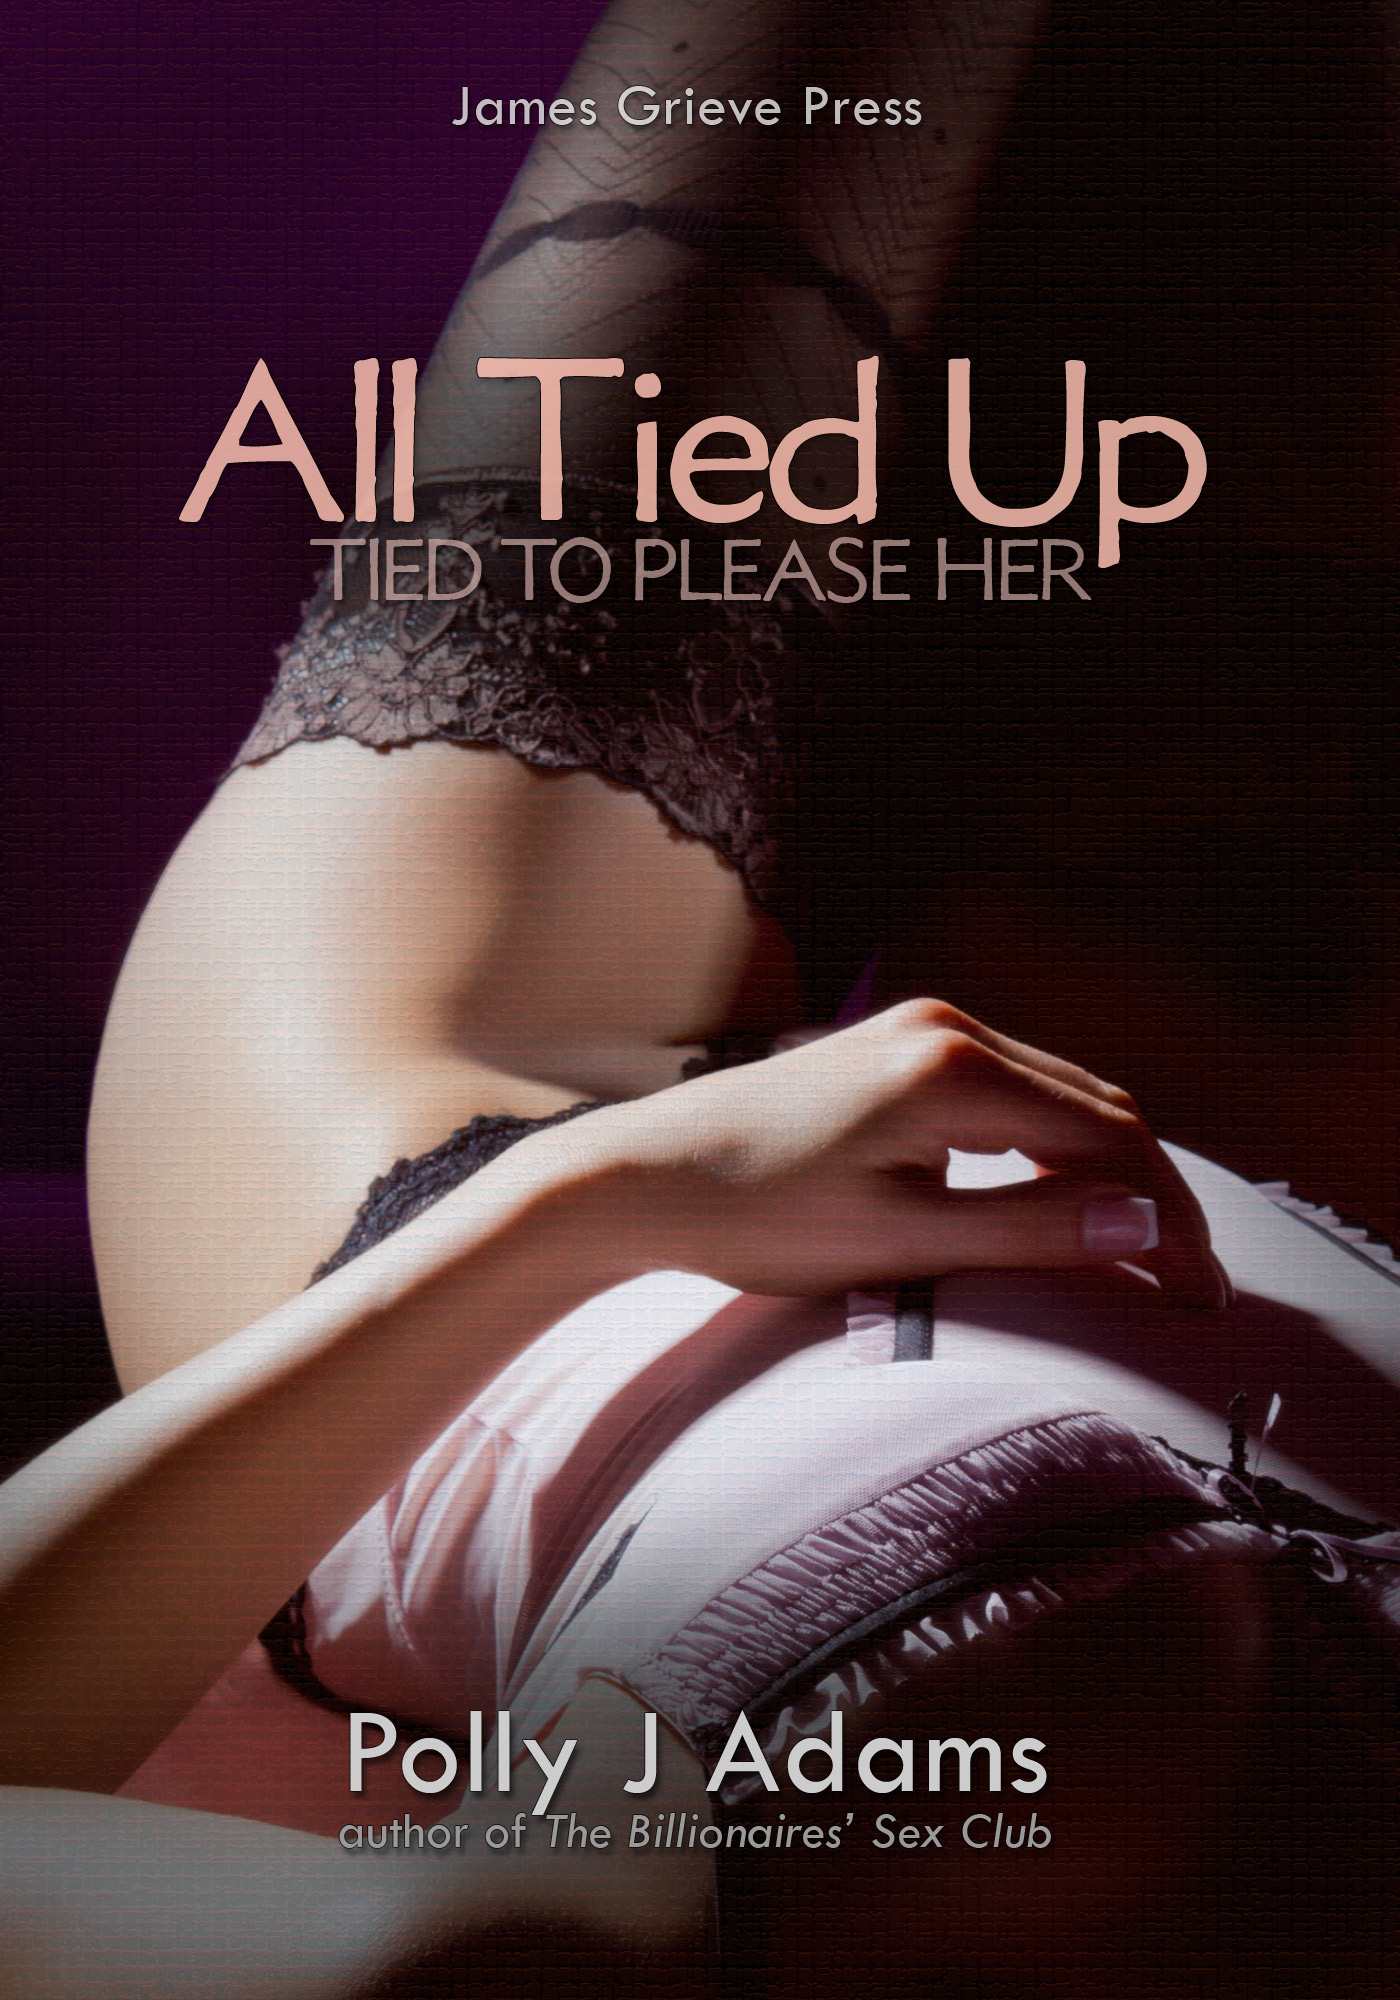 Polly J Adams - All Tied Up